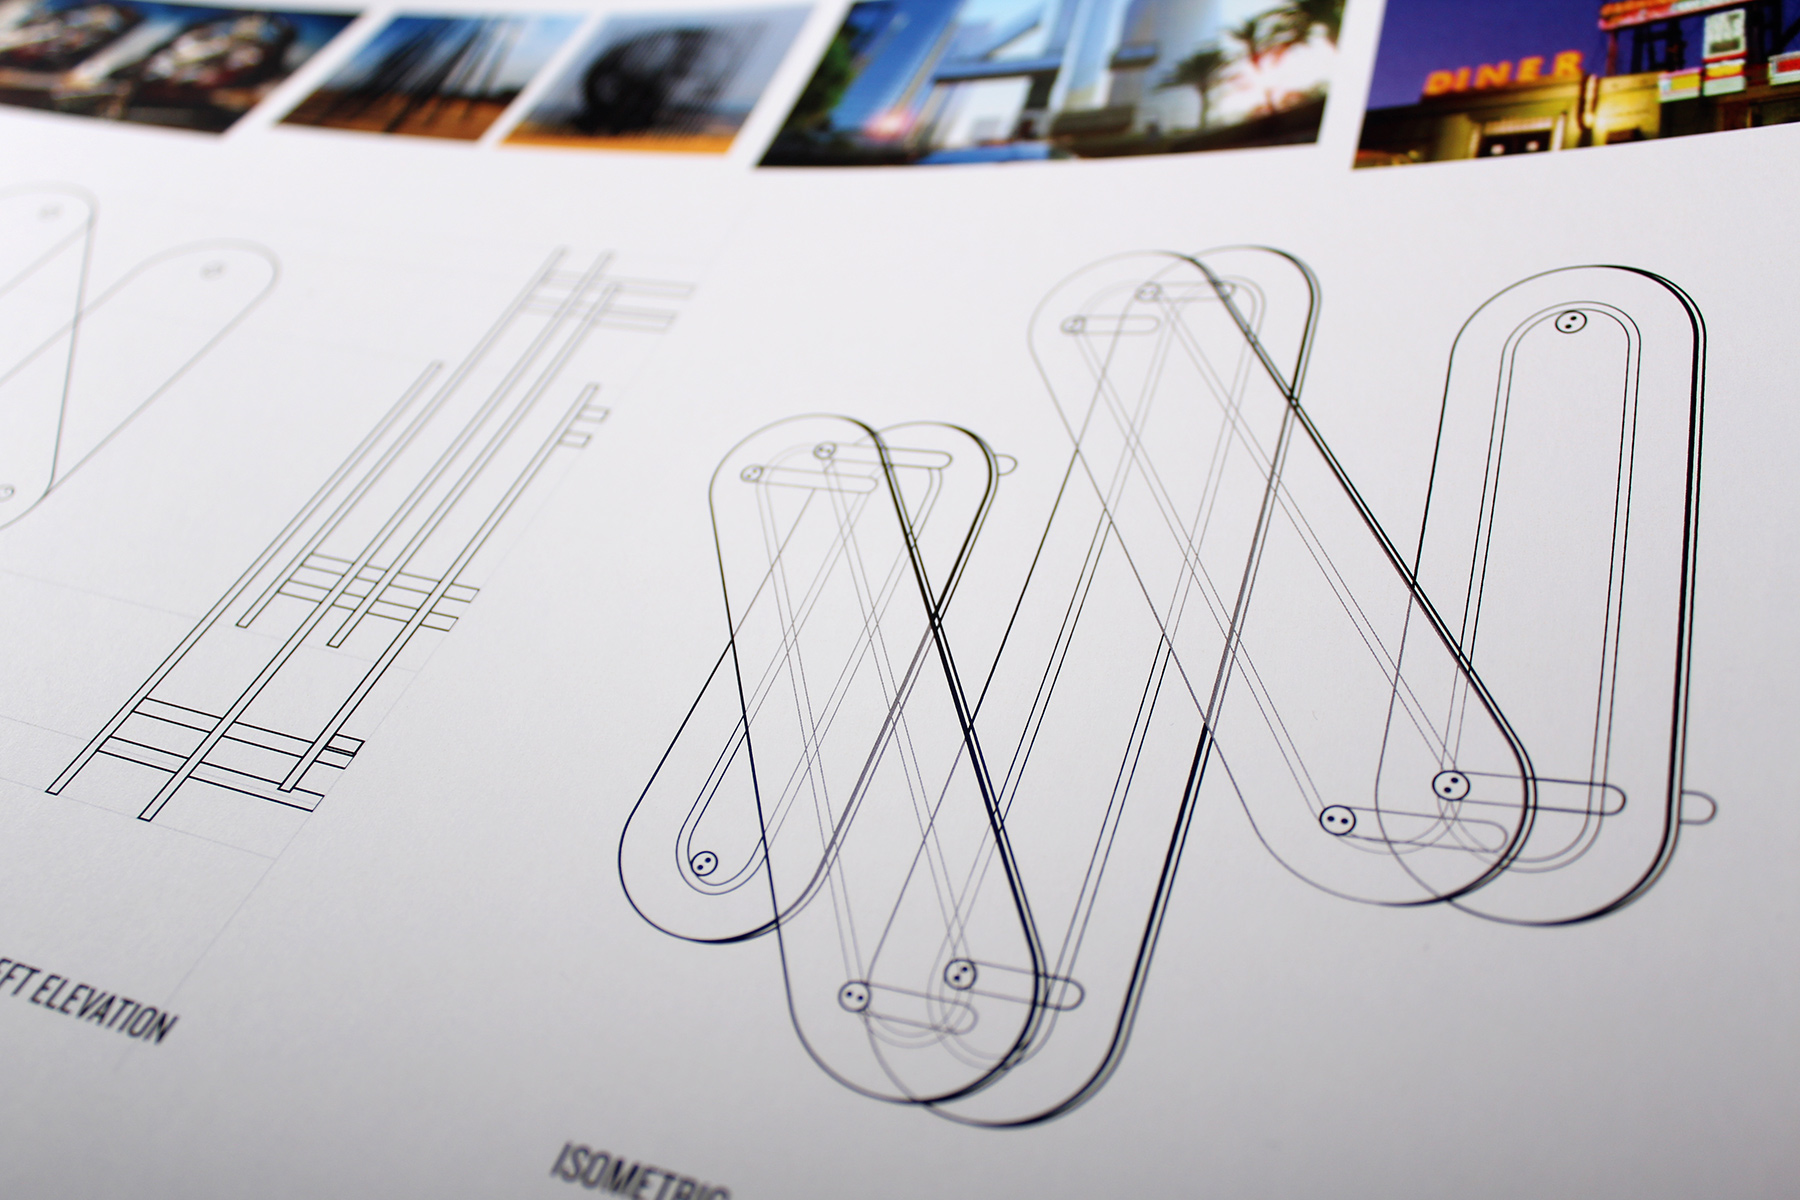 We created the symbol in three dimensions, for usage in signage and wayfinding. In this way, we could replicate the transparency in the static mark utilising overlapping planes.